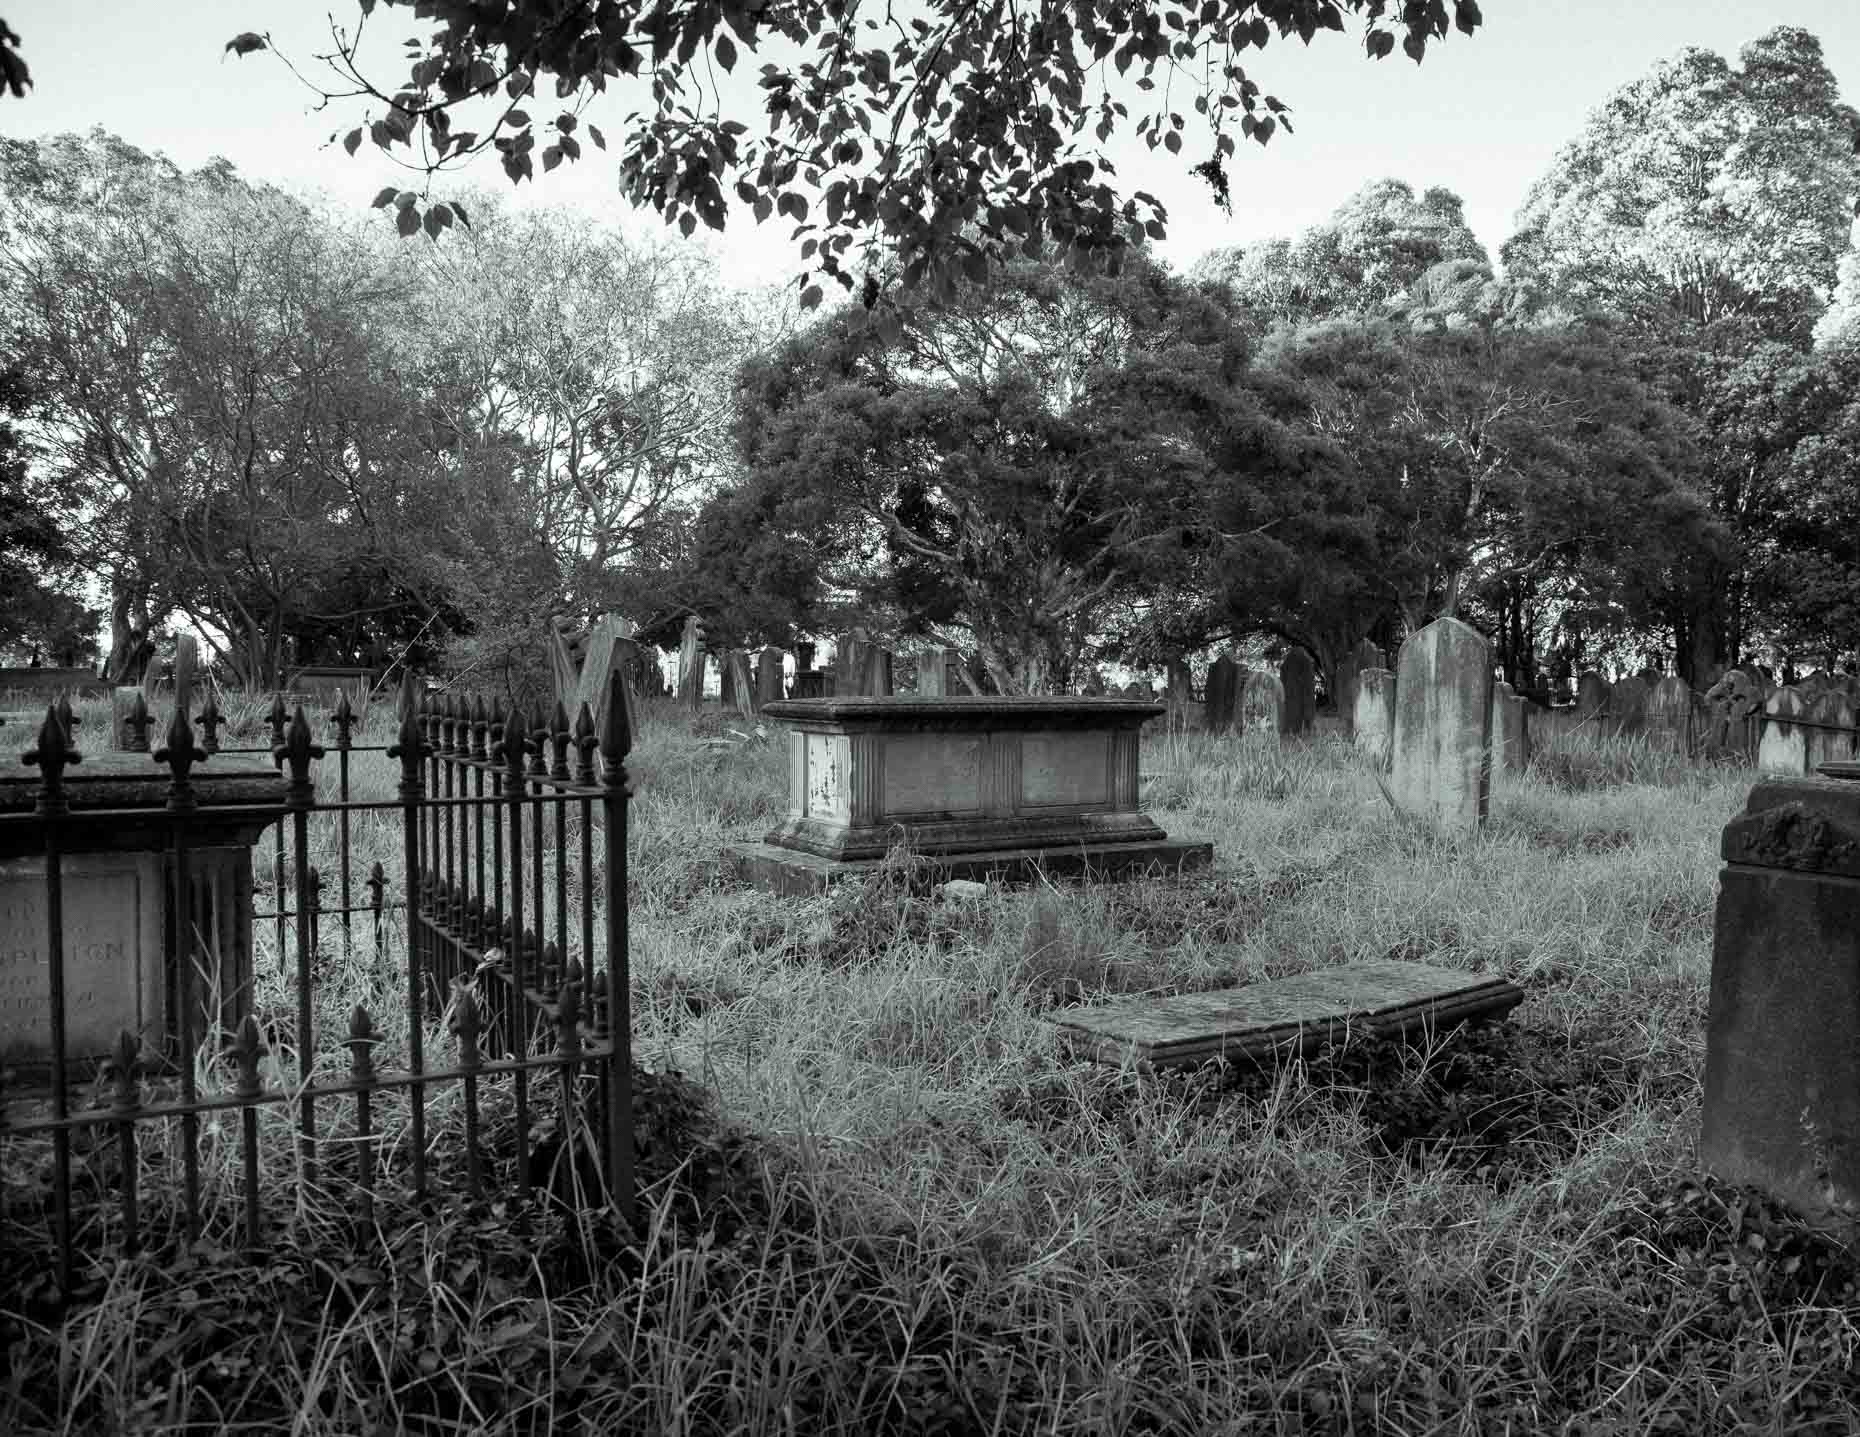 The Planthunter x Daniel Shipp - Cemeteries